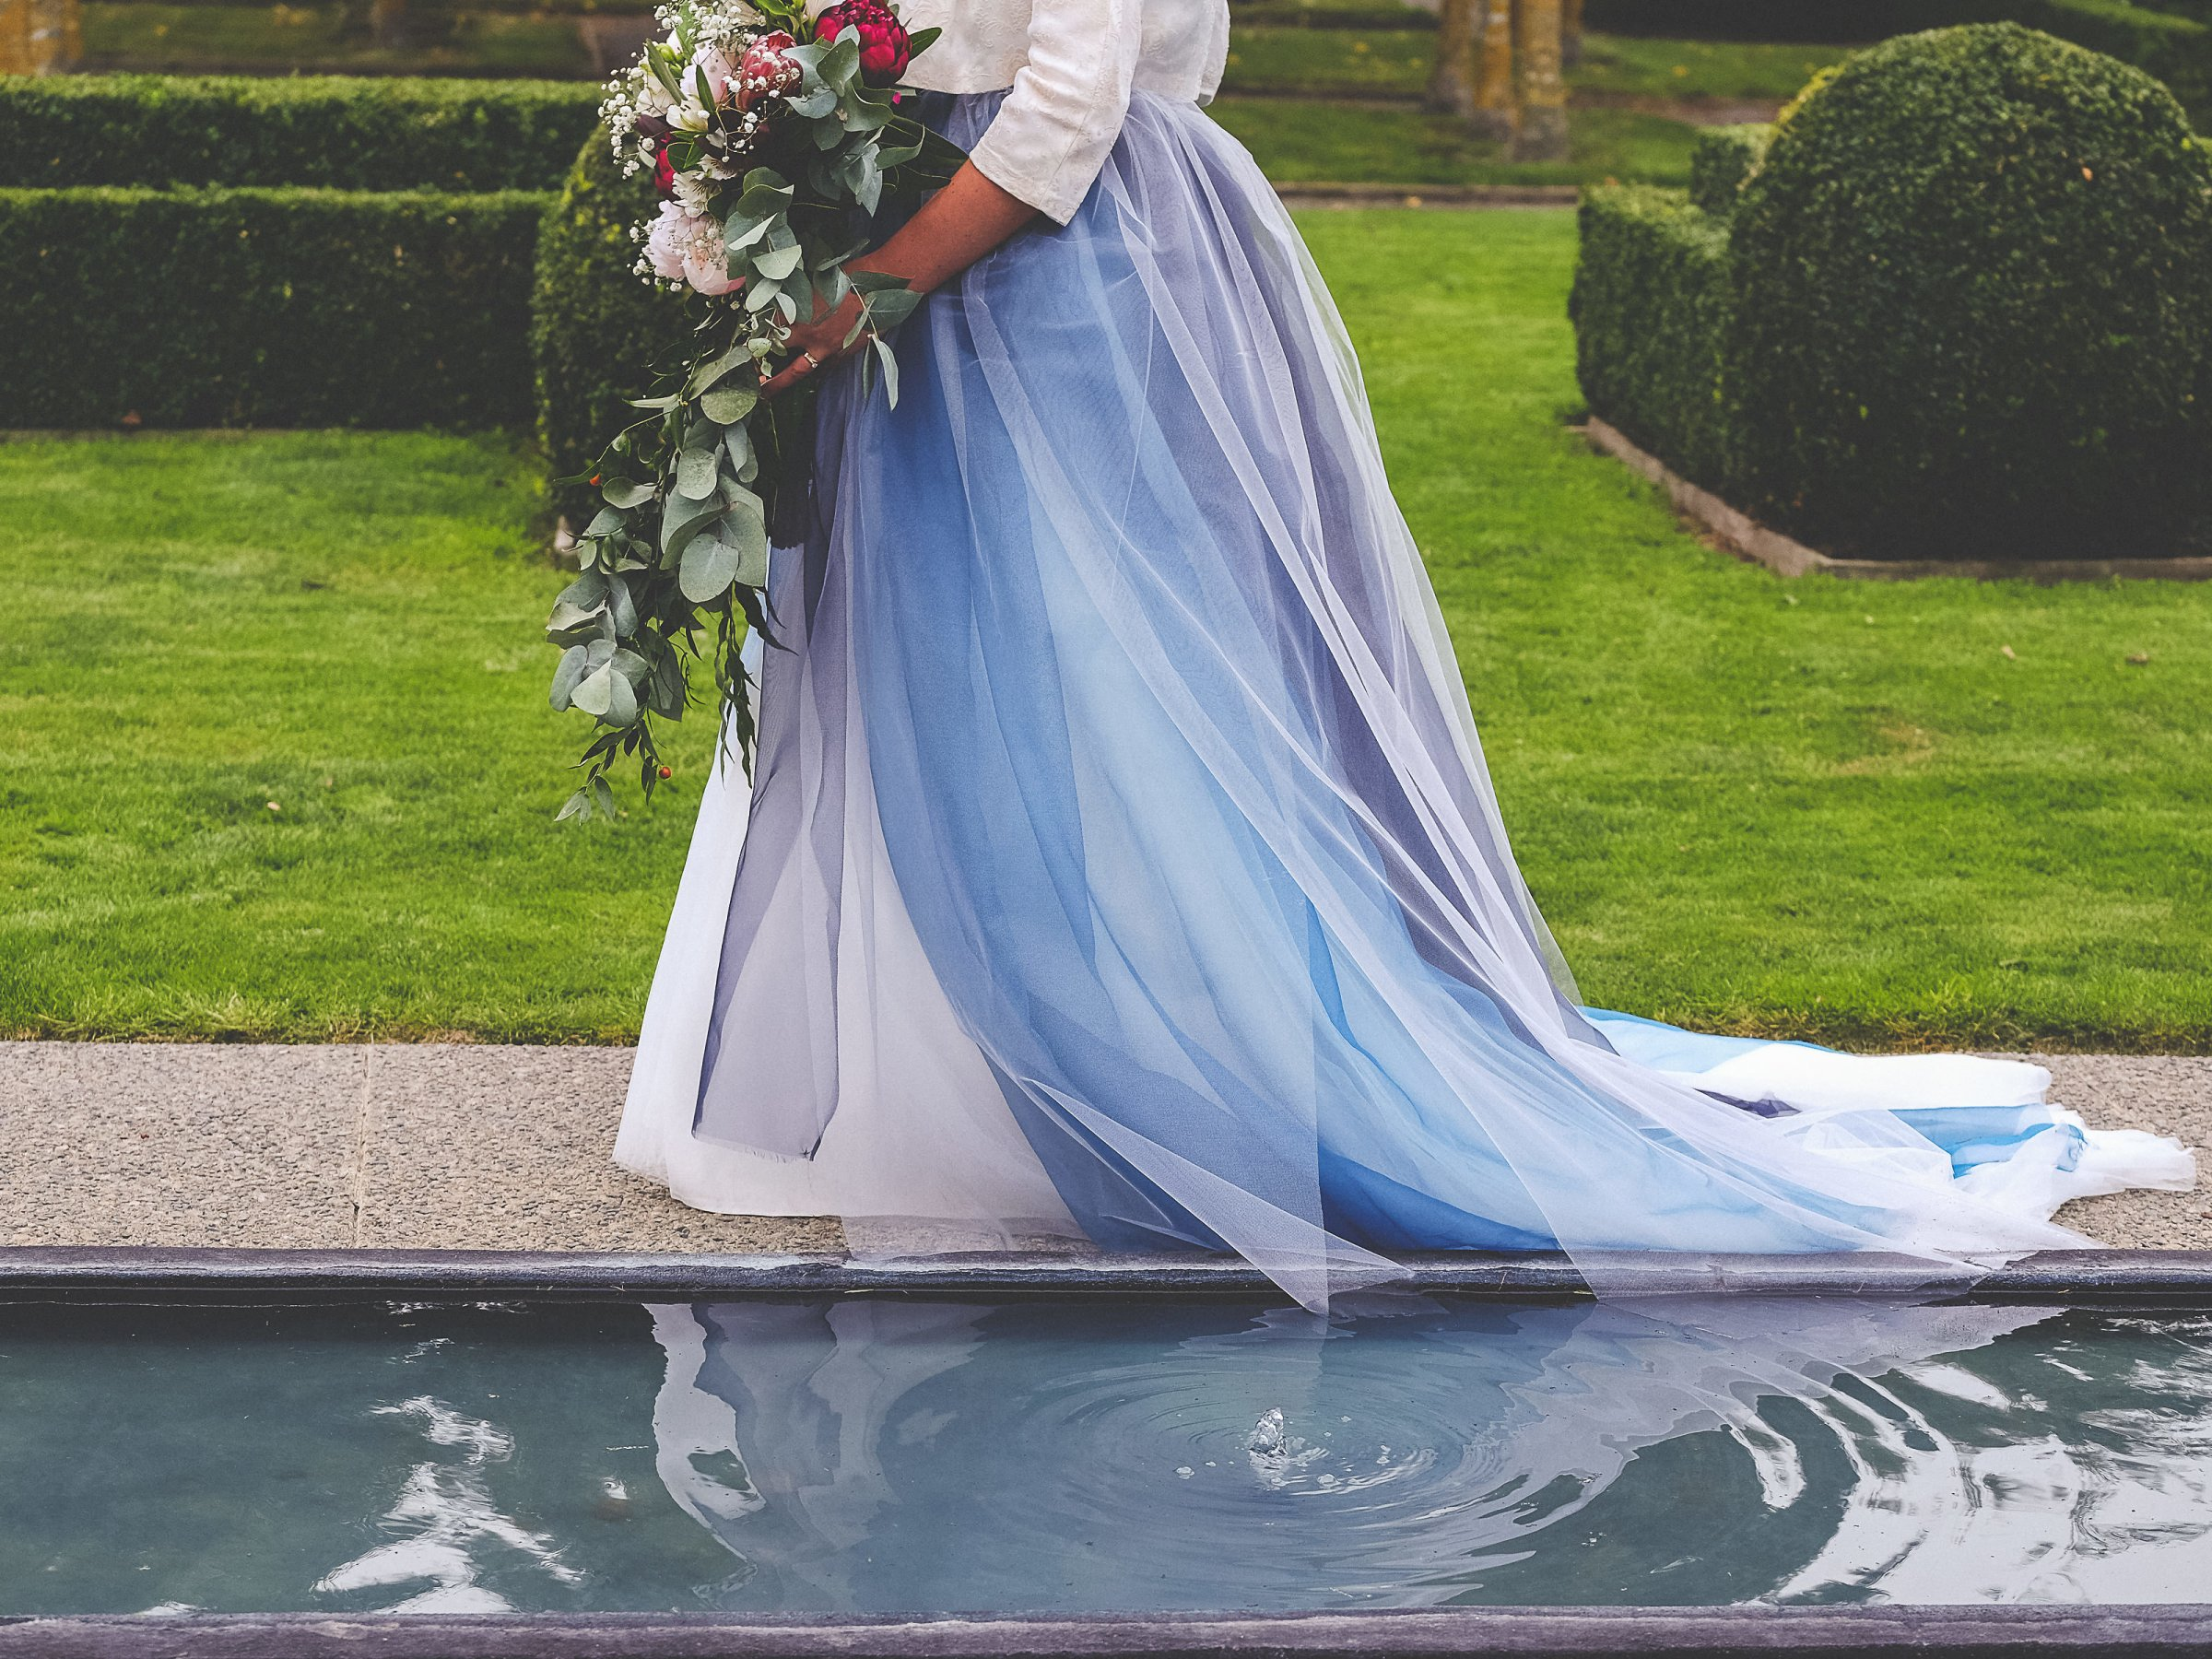 A bride wearing a dress in many shades of blue as she walks past a small water feature carrying her wedding bouquet.